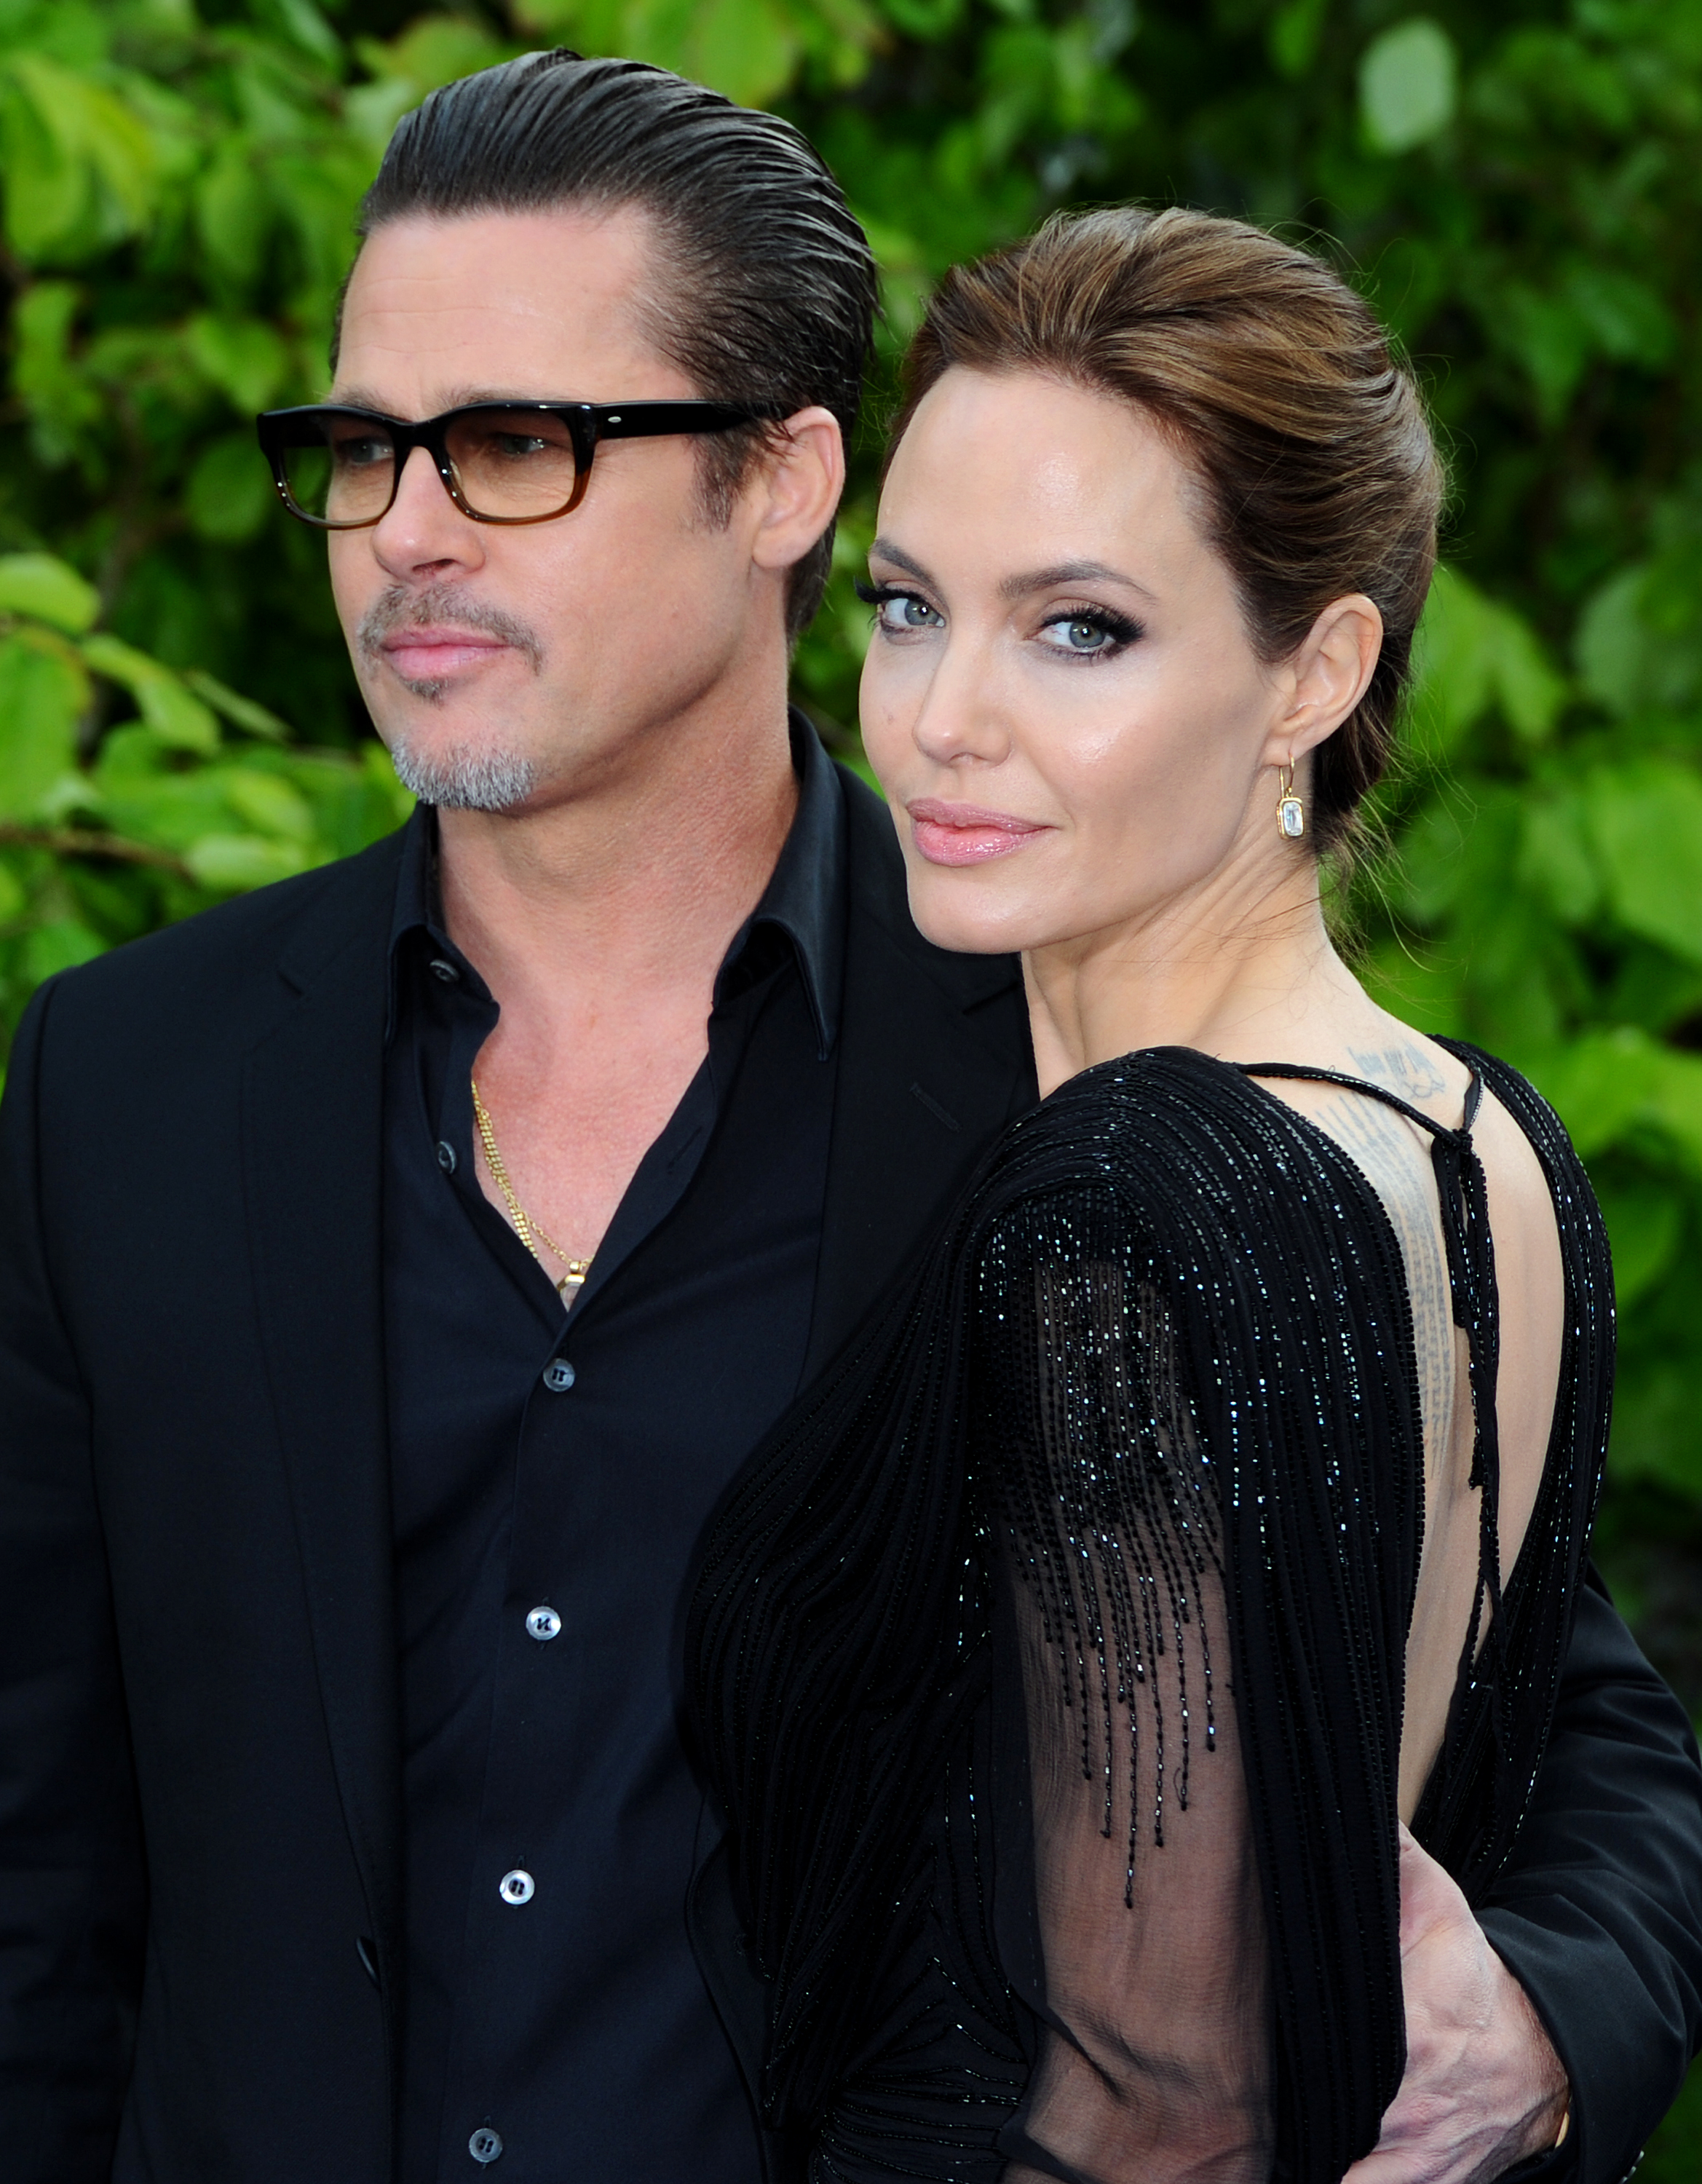 Bet Angelina Jolie is currently working on her revenge body...